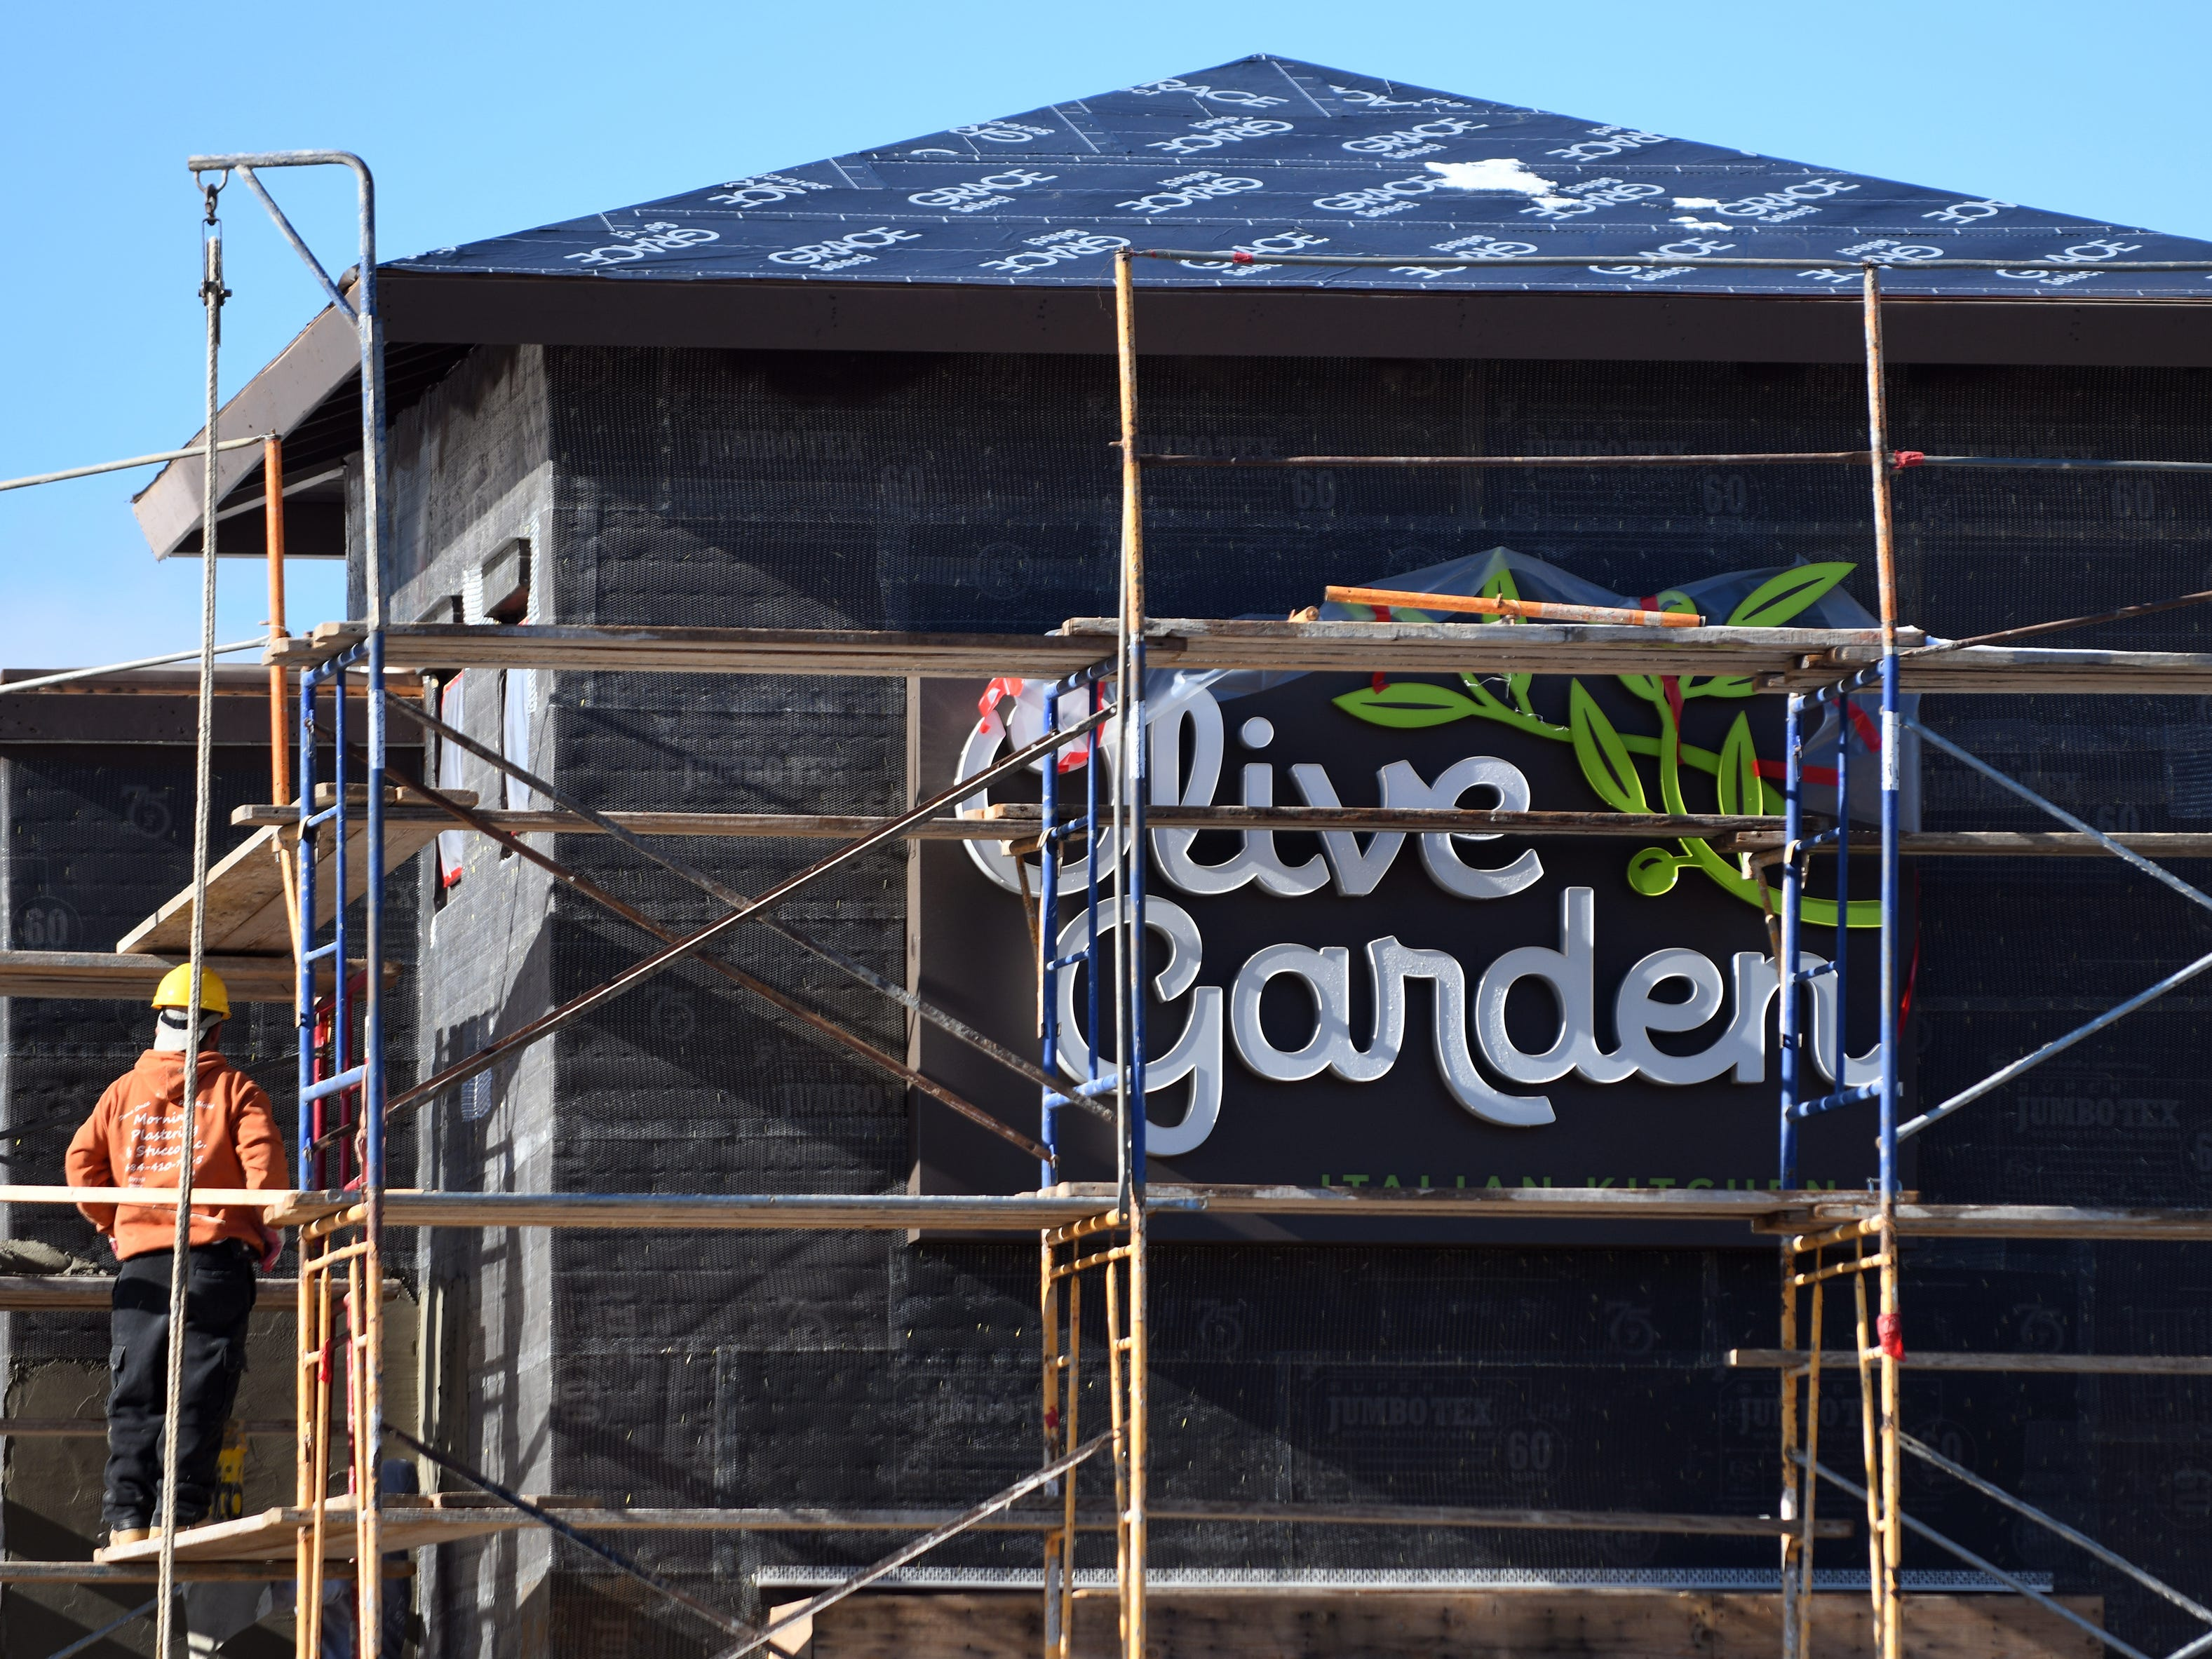 Construction continues on the Olive Garden in Vineland located across from the Cumberland Mall at 3880 South Delsea Drive on Friday, December 7, 2018.